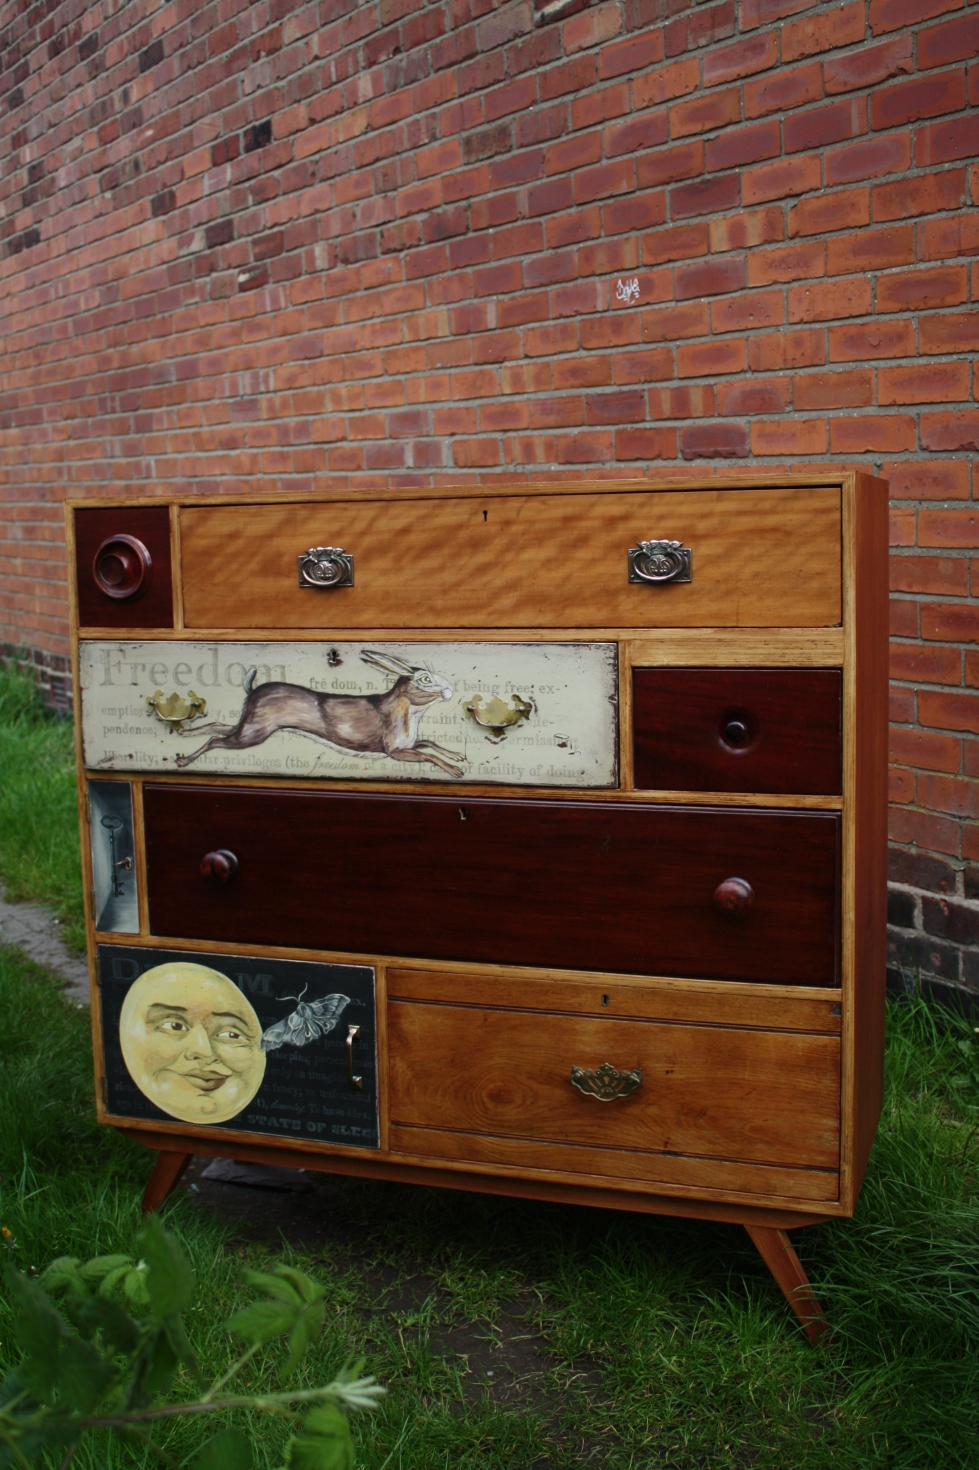 Chest of drawers Sideboard Tall Boy Handmade Bespoke Mix of Antique Vintage Retro Modern